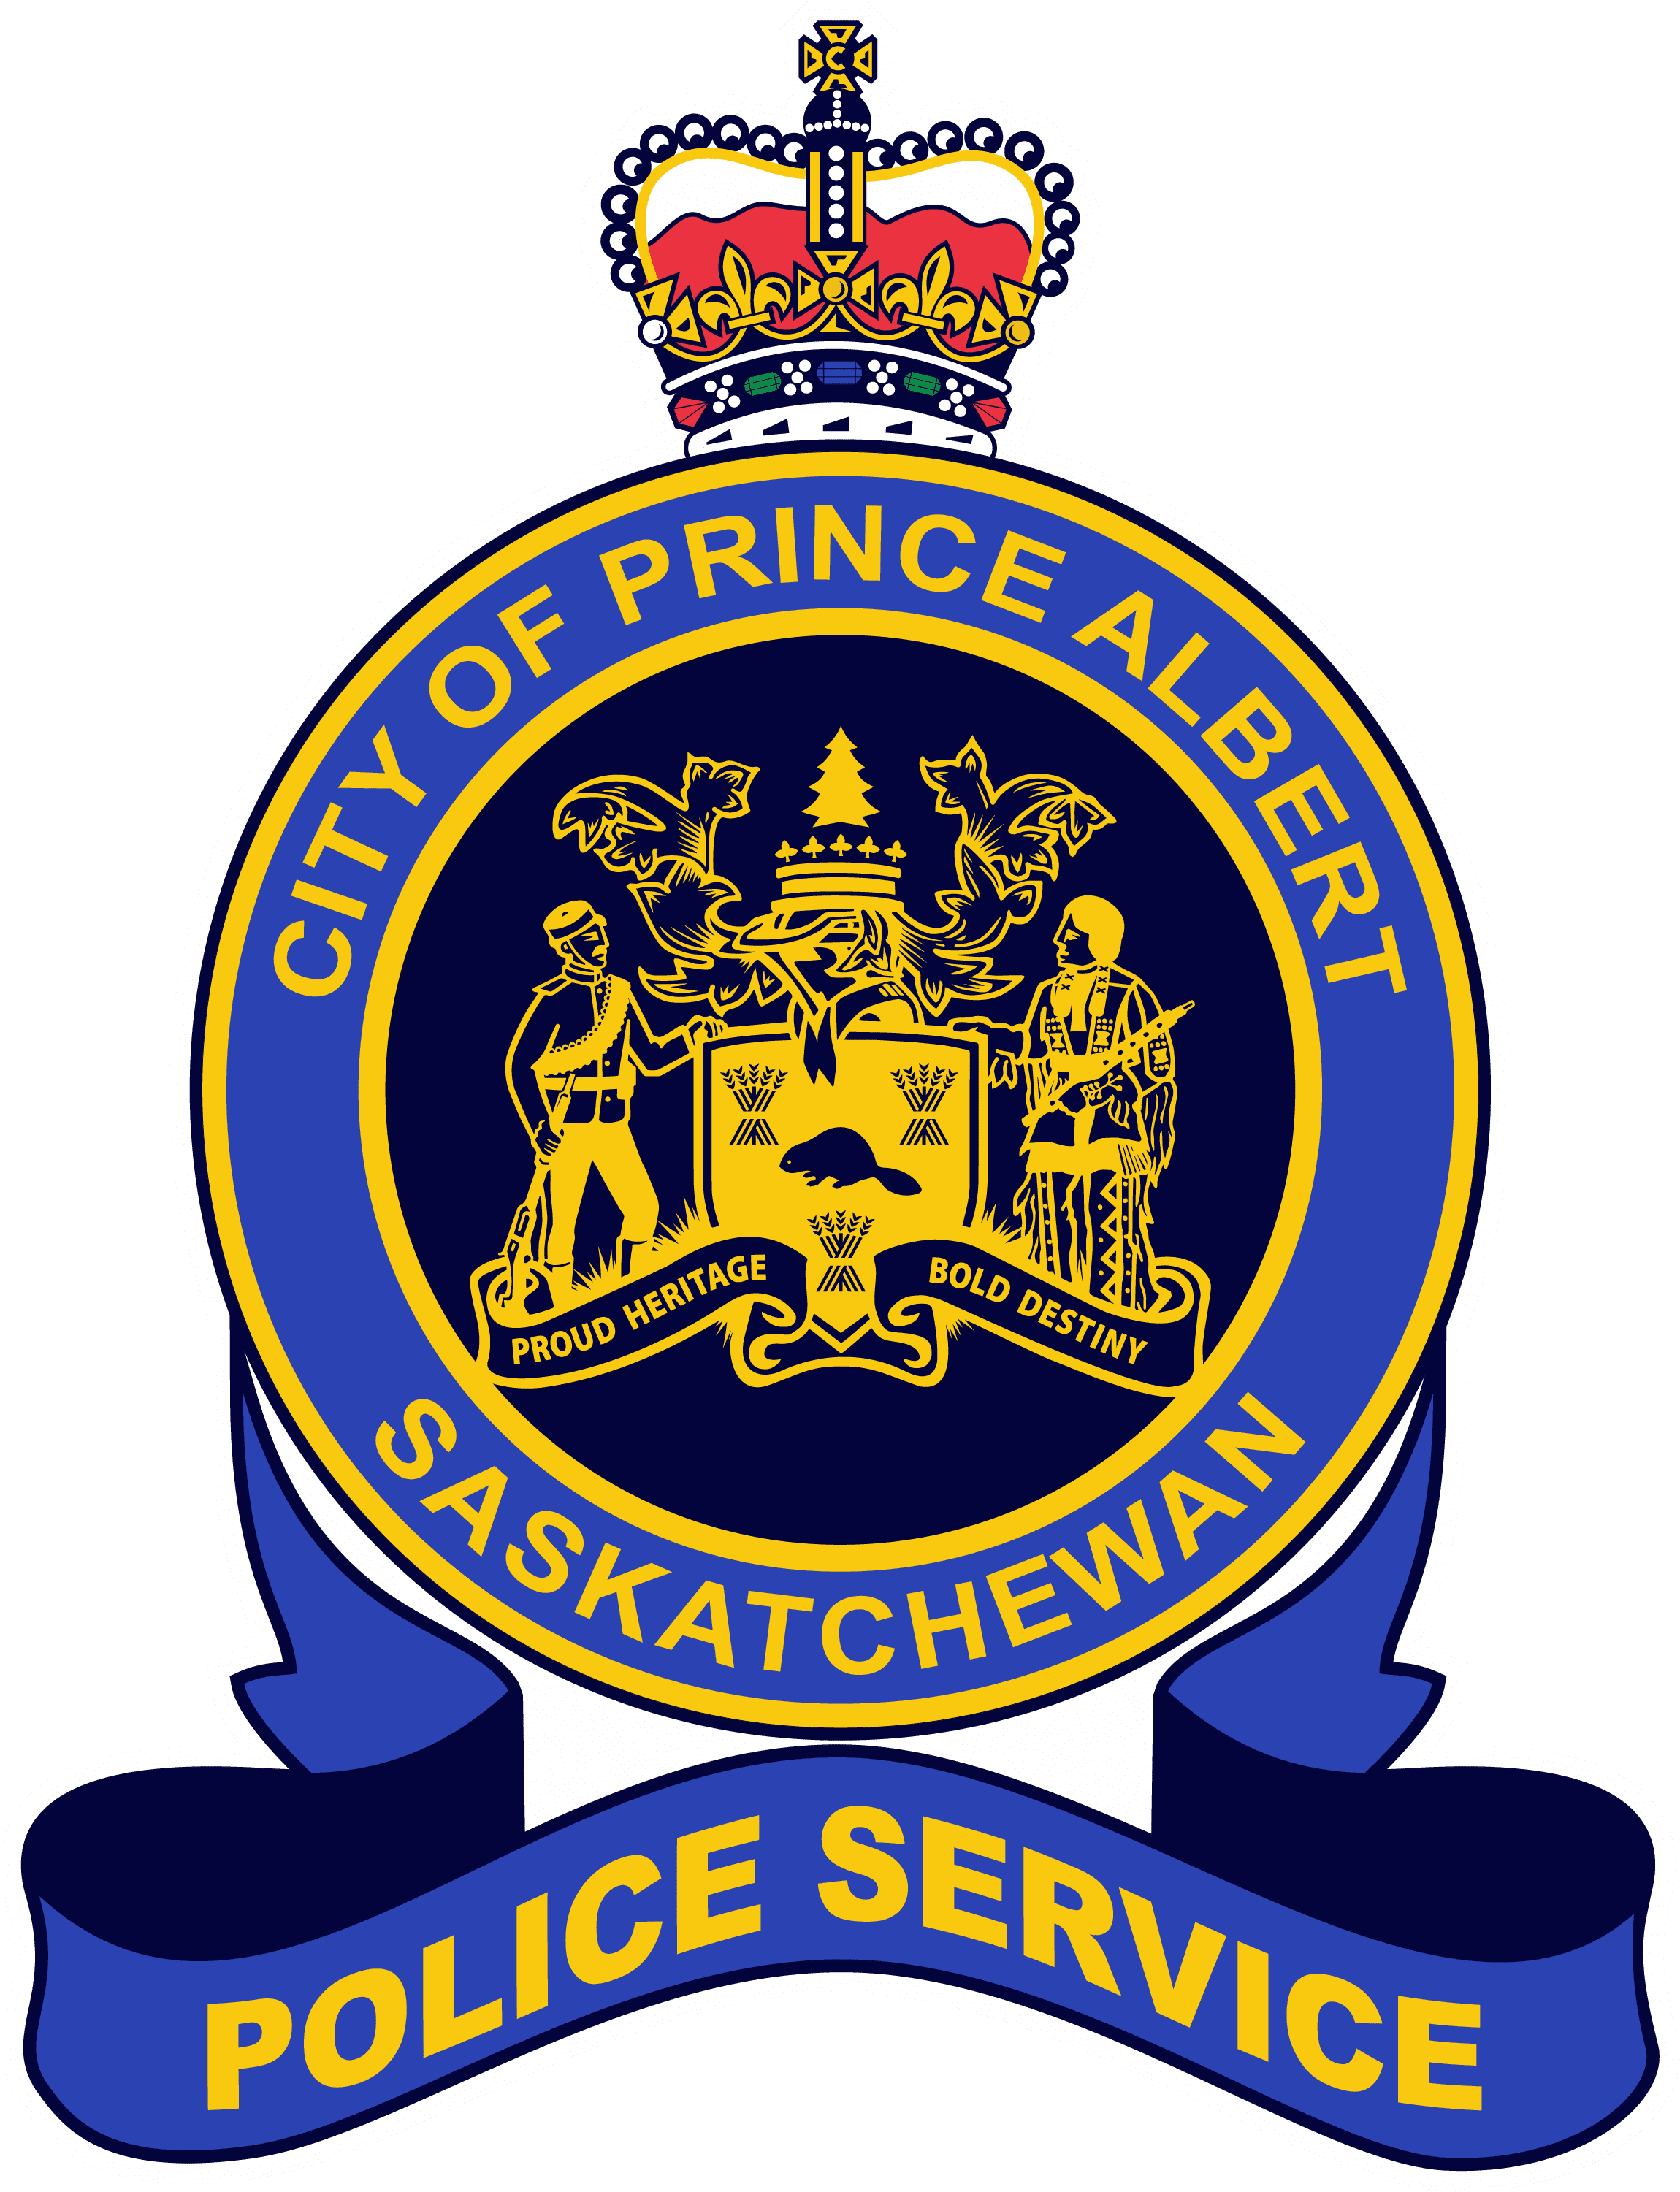 Media Release - Prince Albert Police Open to Discussing Police Response with PAGC